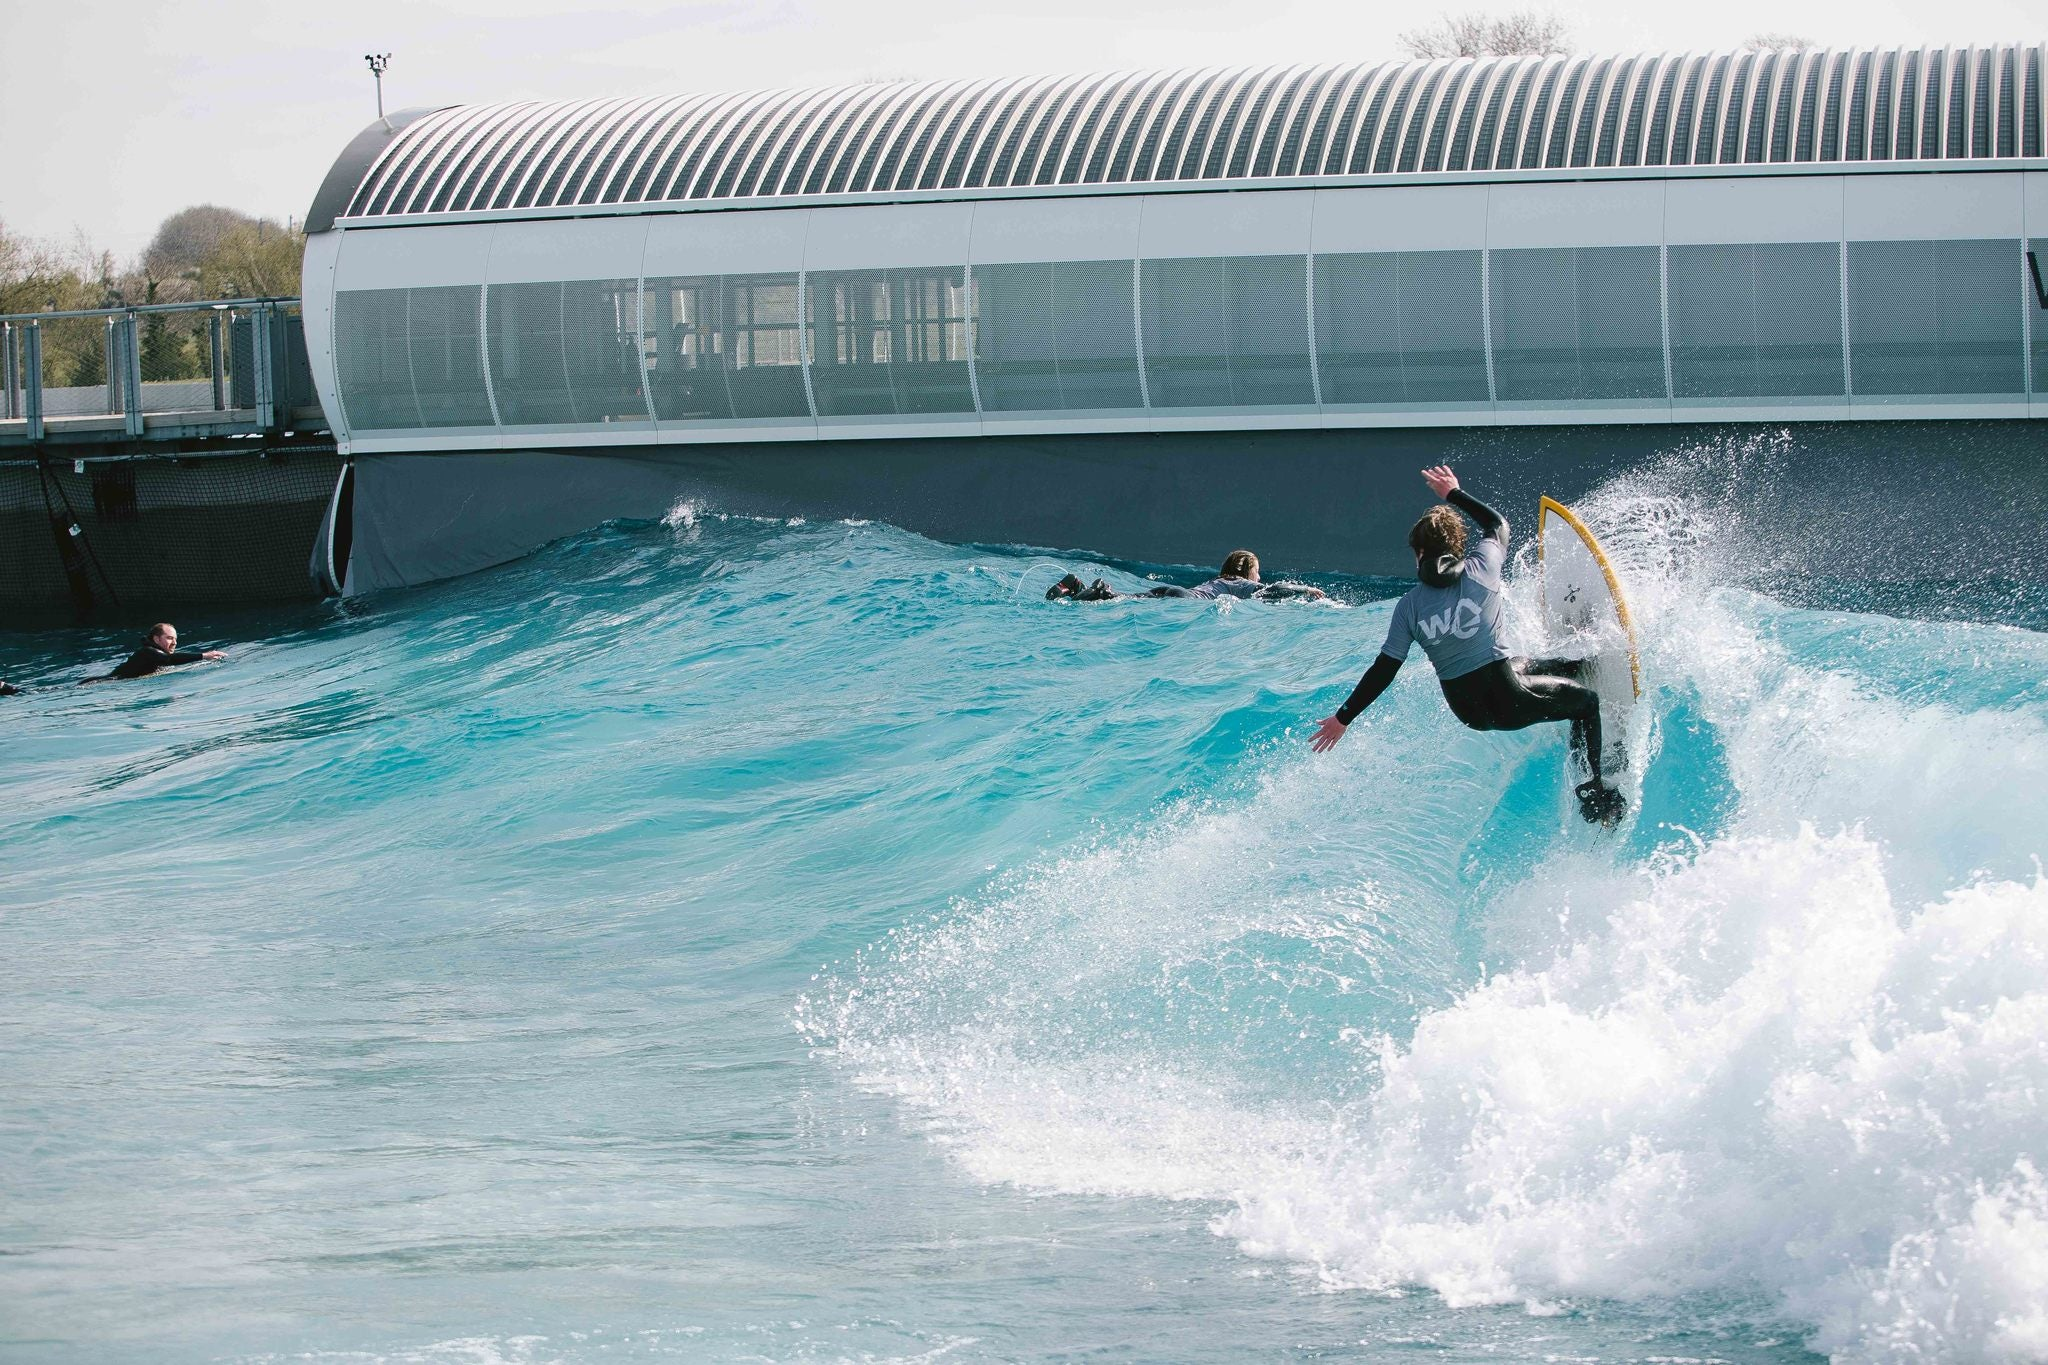 Team England Junior Surfing at The Wave